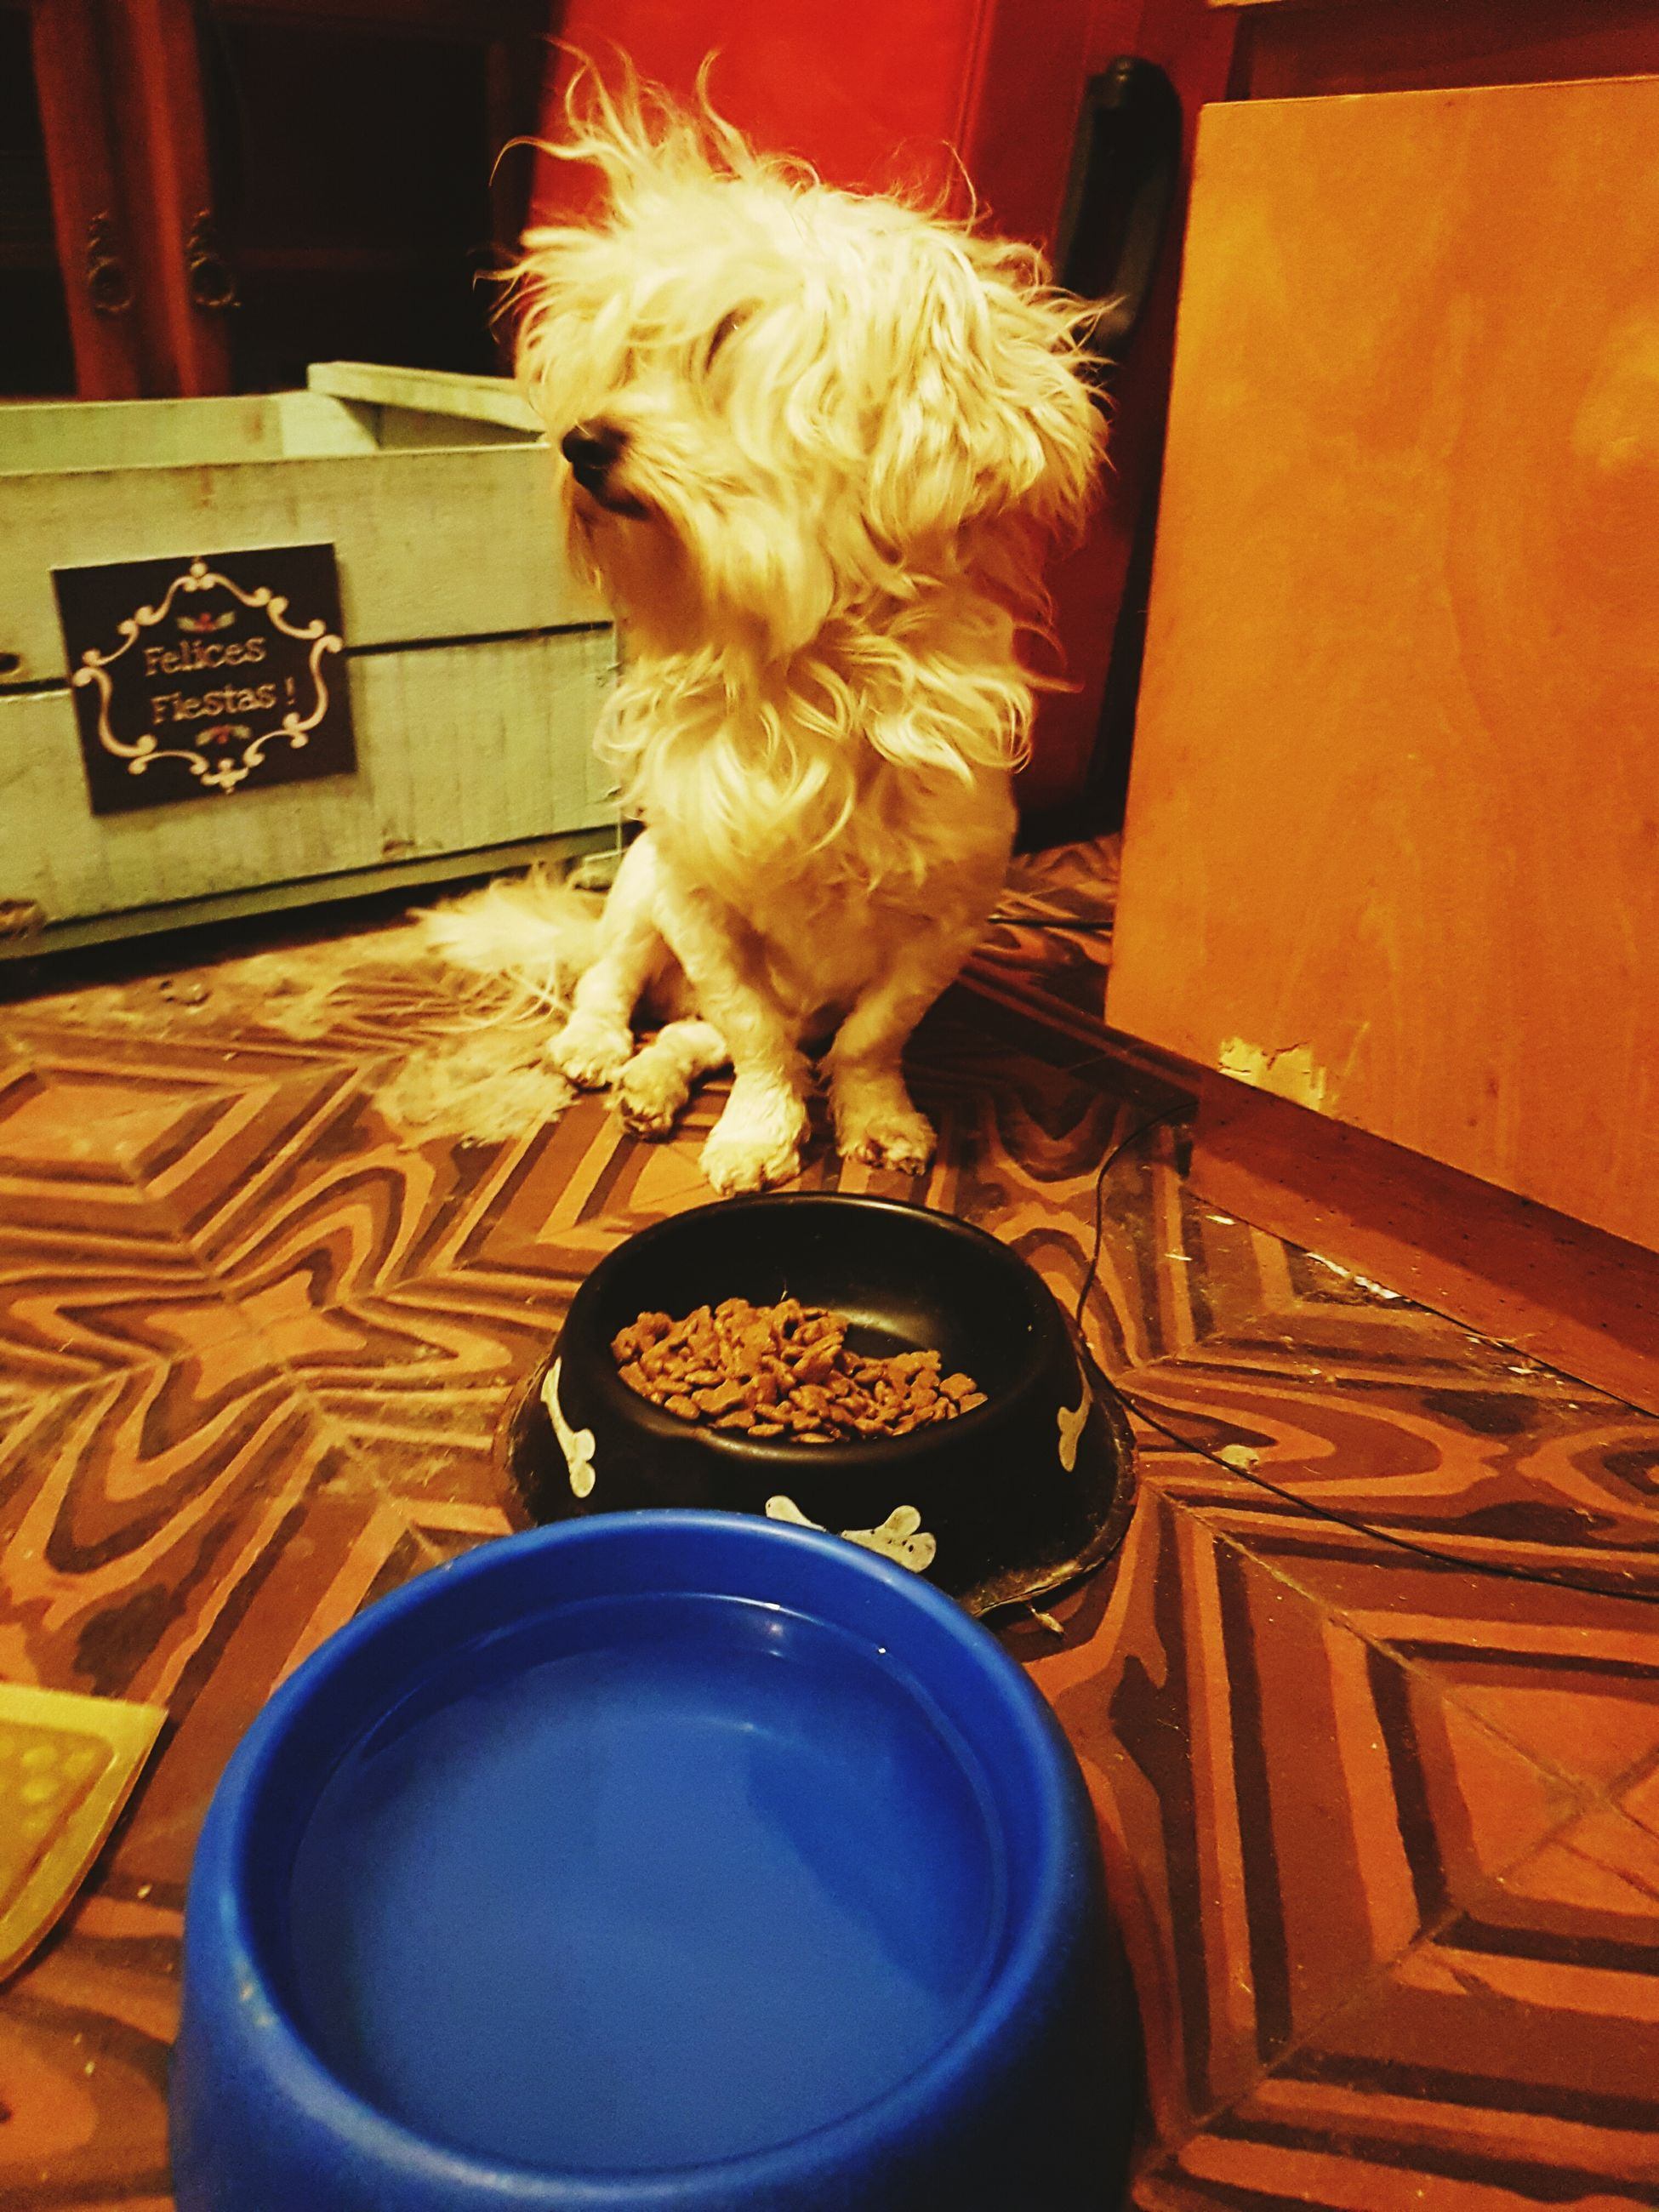 pets, domestic animals, animal themes, mammal, one animal, dog, indoors, no people, table, domestic cat, home interior, day